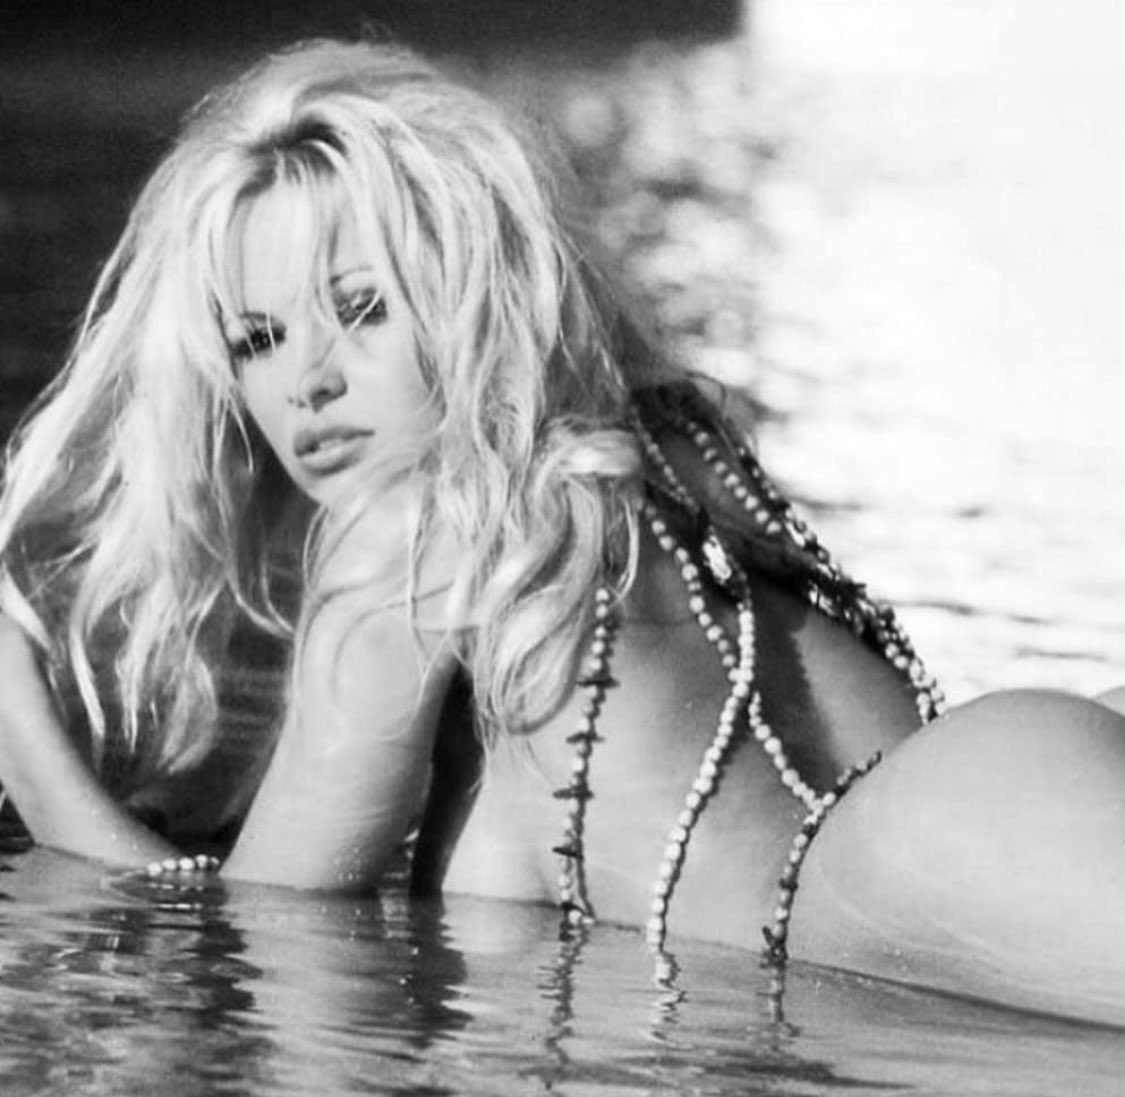 Where I fell in love with St Tropez #playboy https://t.co/5qsVgytERV